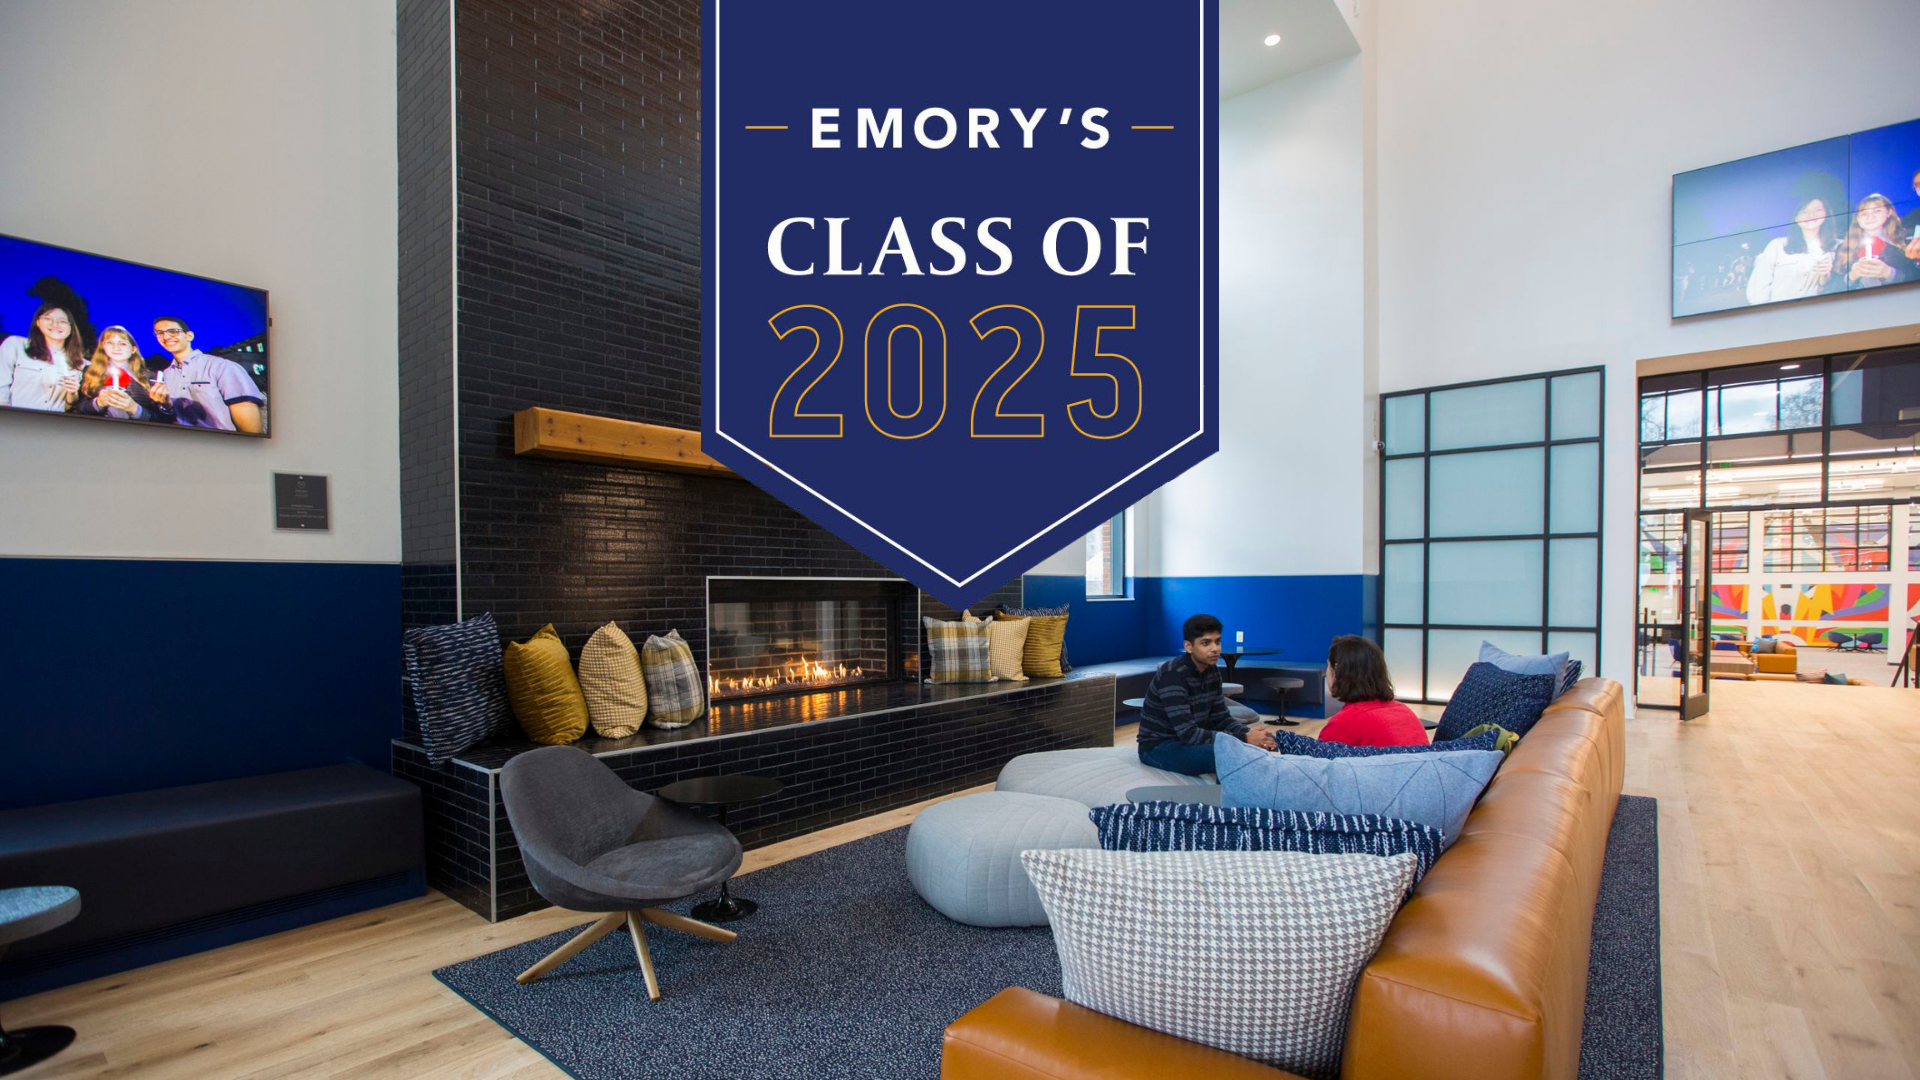 The final students admitted to Emory's Class of 2025 are drawn from the largest and most diverse applicant pool in the university's history.